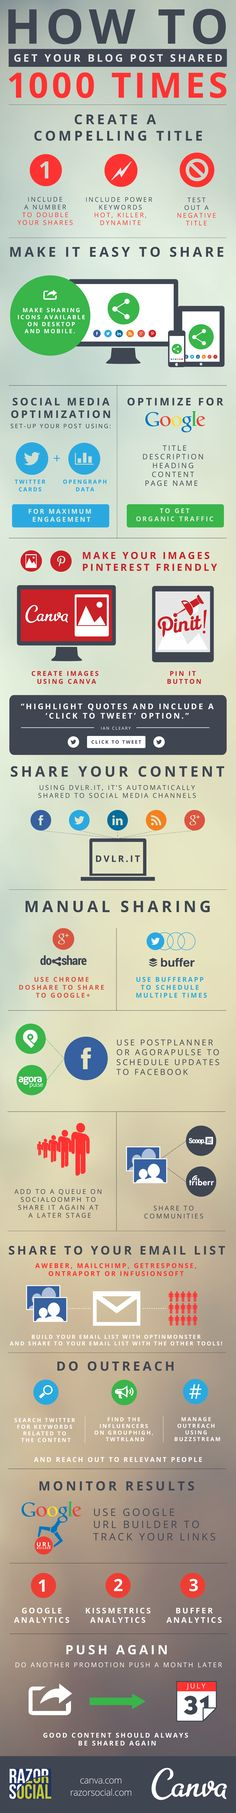 Get Your Blog Post Shared over 1000 times! Infographic #SocialMedia #blogging